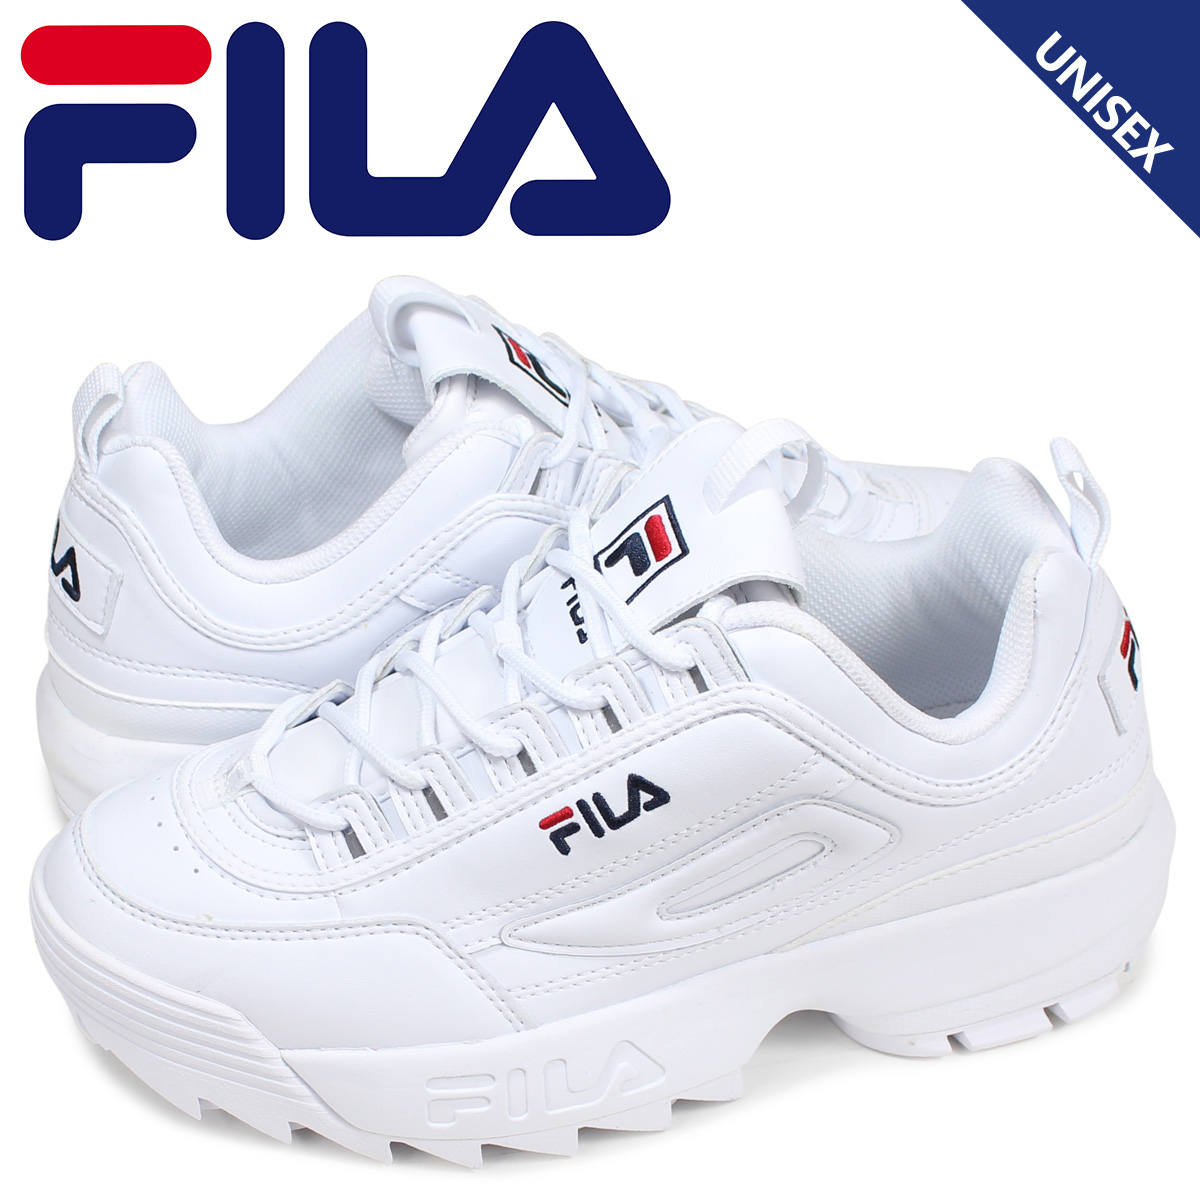 fashionable style huge range of huge sale FILA フィラディスラプター 2 sneakers men gap Dis DISRUPTOR 2 white white FS1HTB1071X